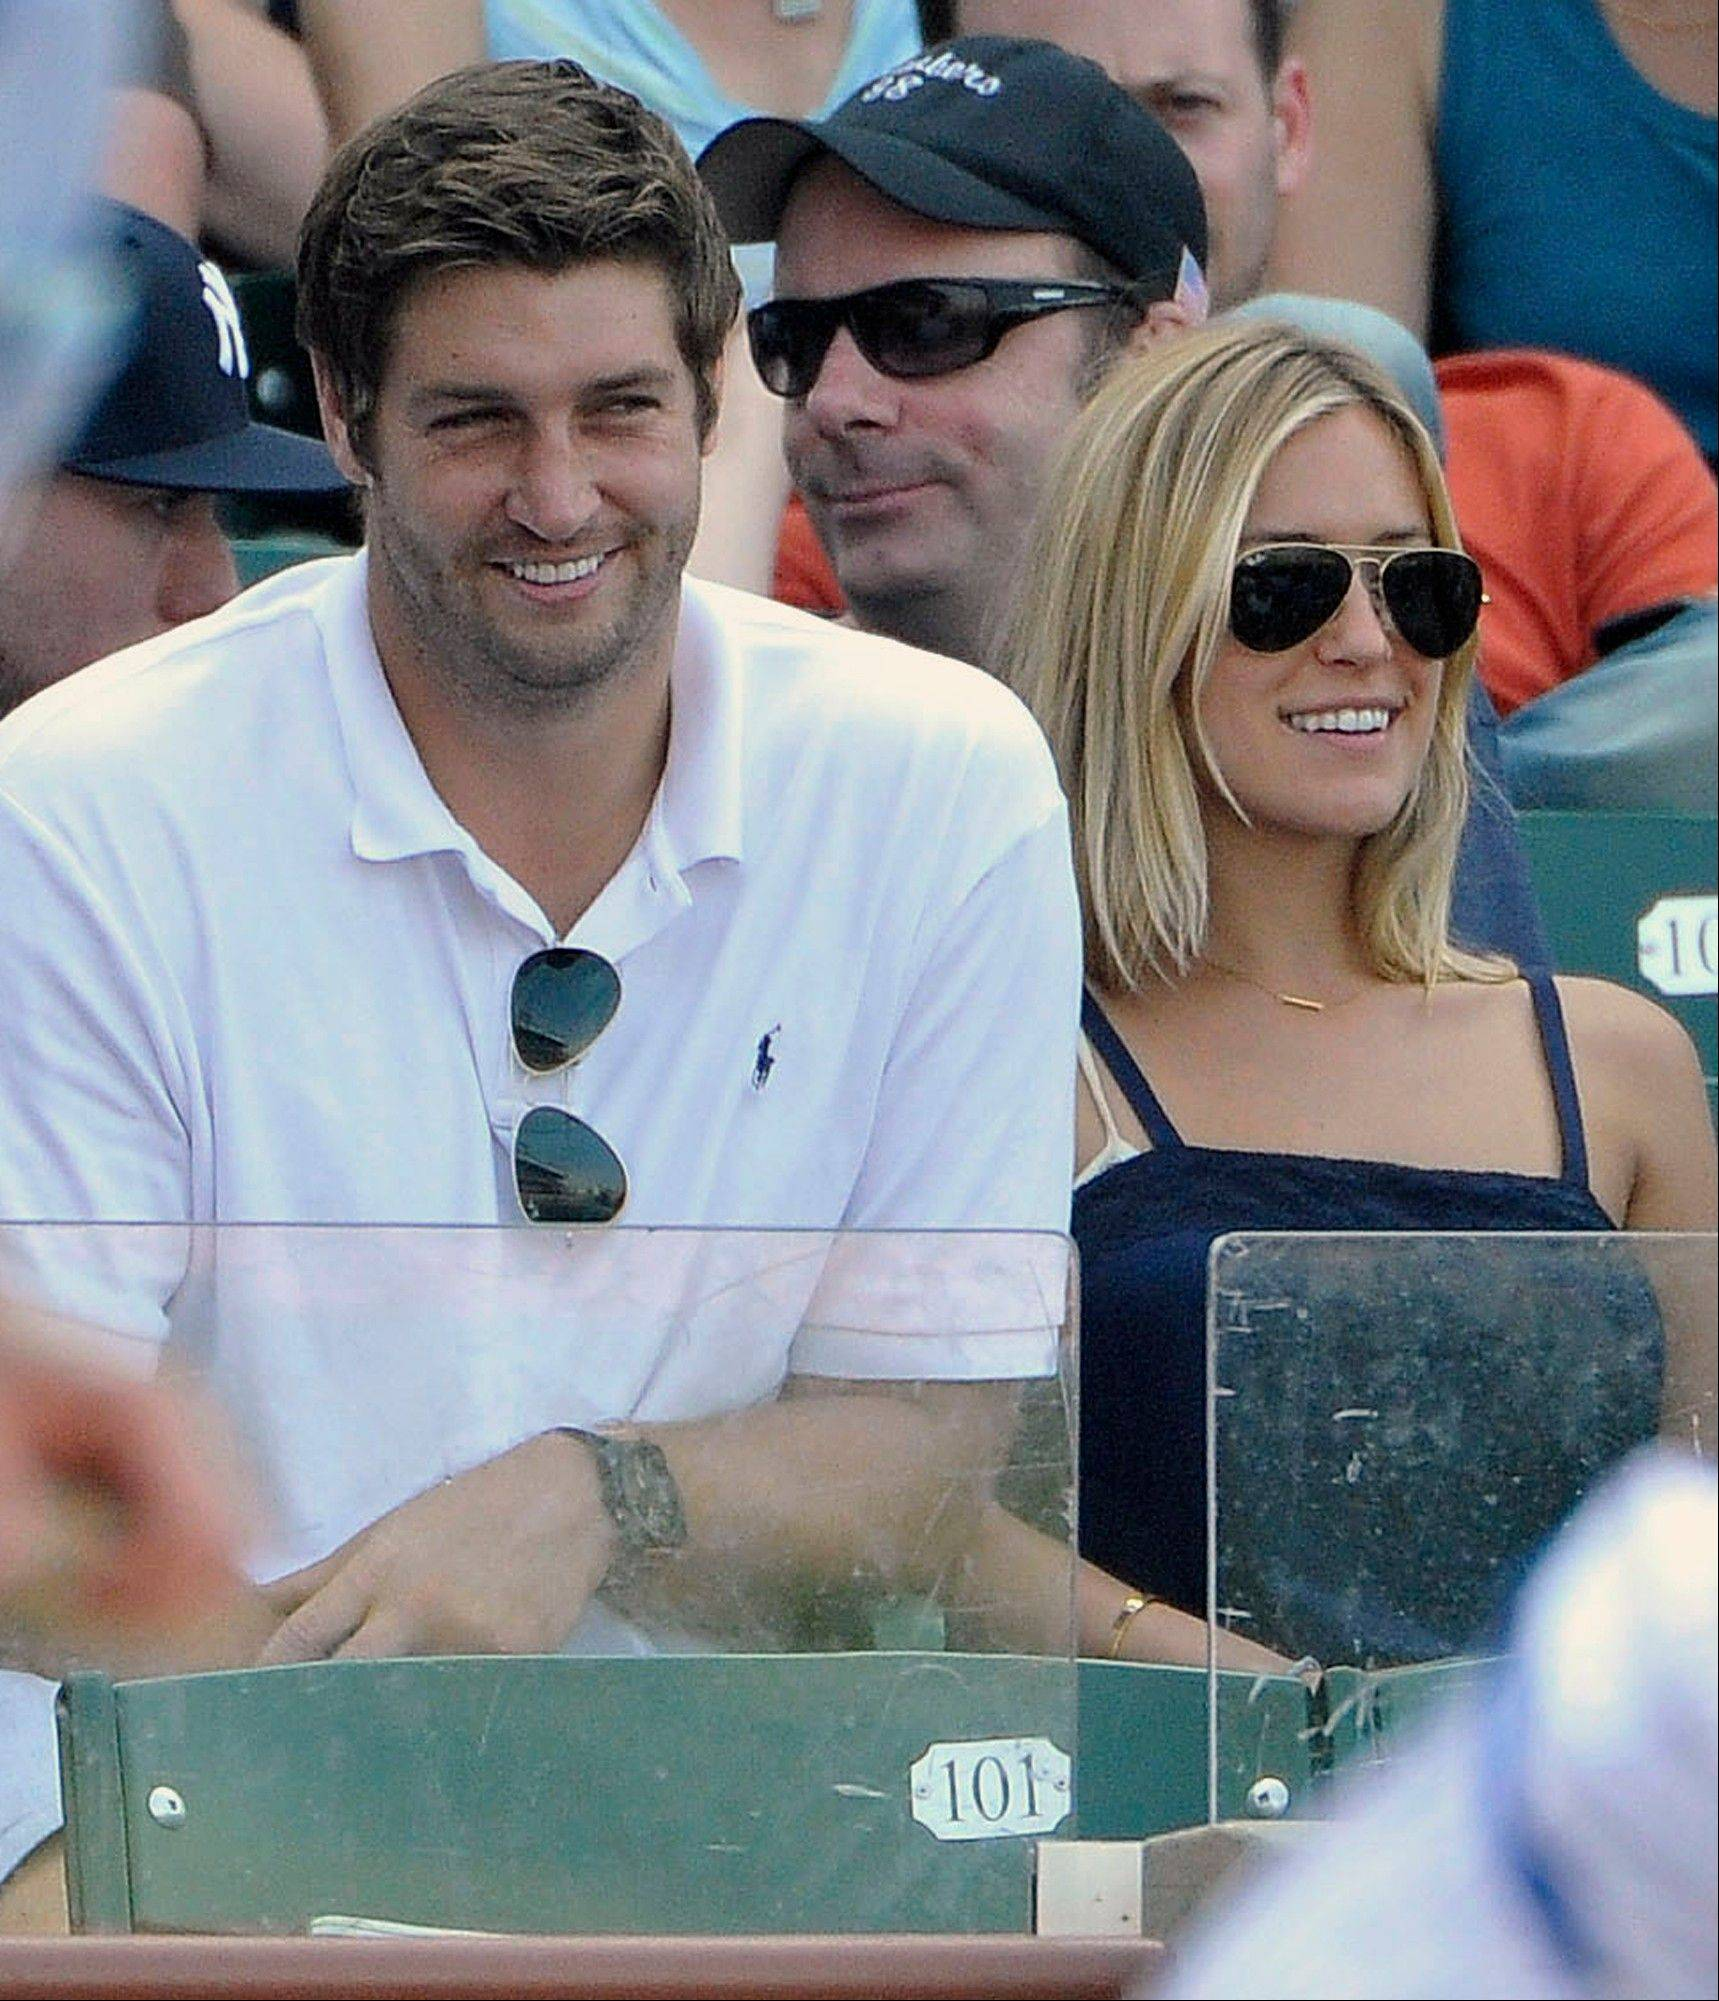 Chicago Bears quarterback Jay Cutler, center, and reality star Kristin Cavallari watch the Cubs play the White Sox in July 2011. Barrington native Cavallari tweeted Friday afternoon that the two had finally wed in Tennessee.